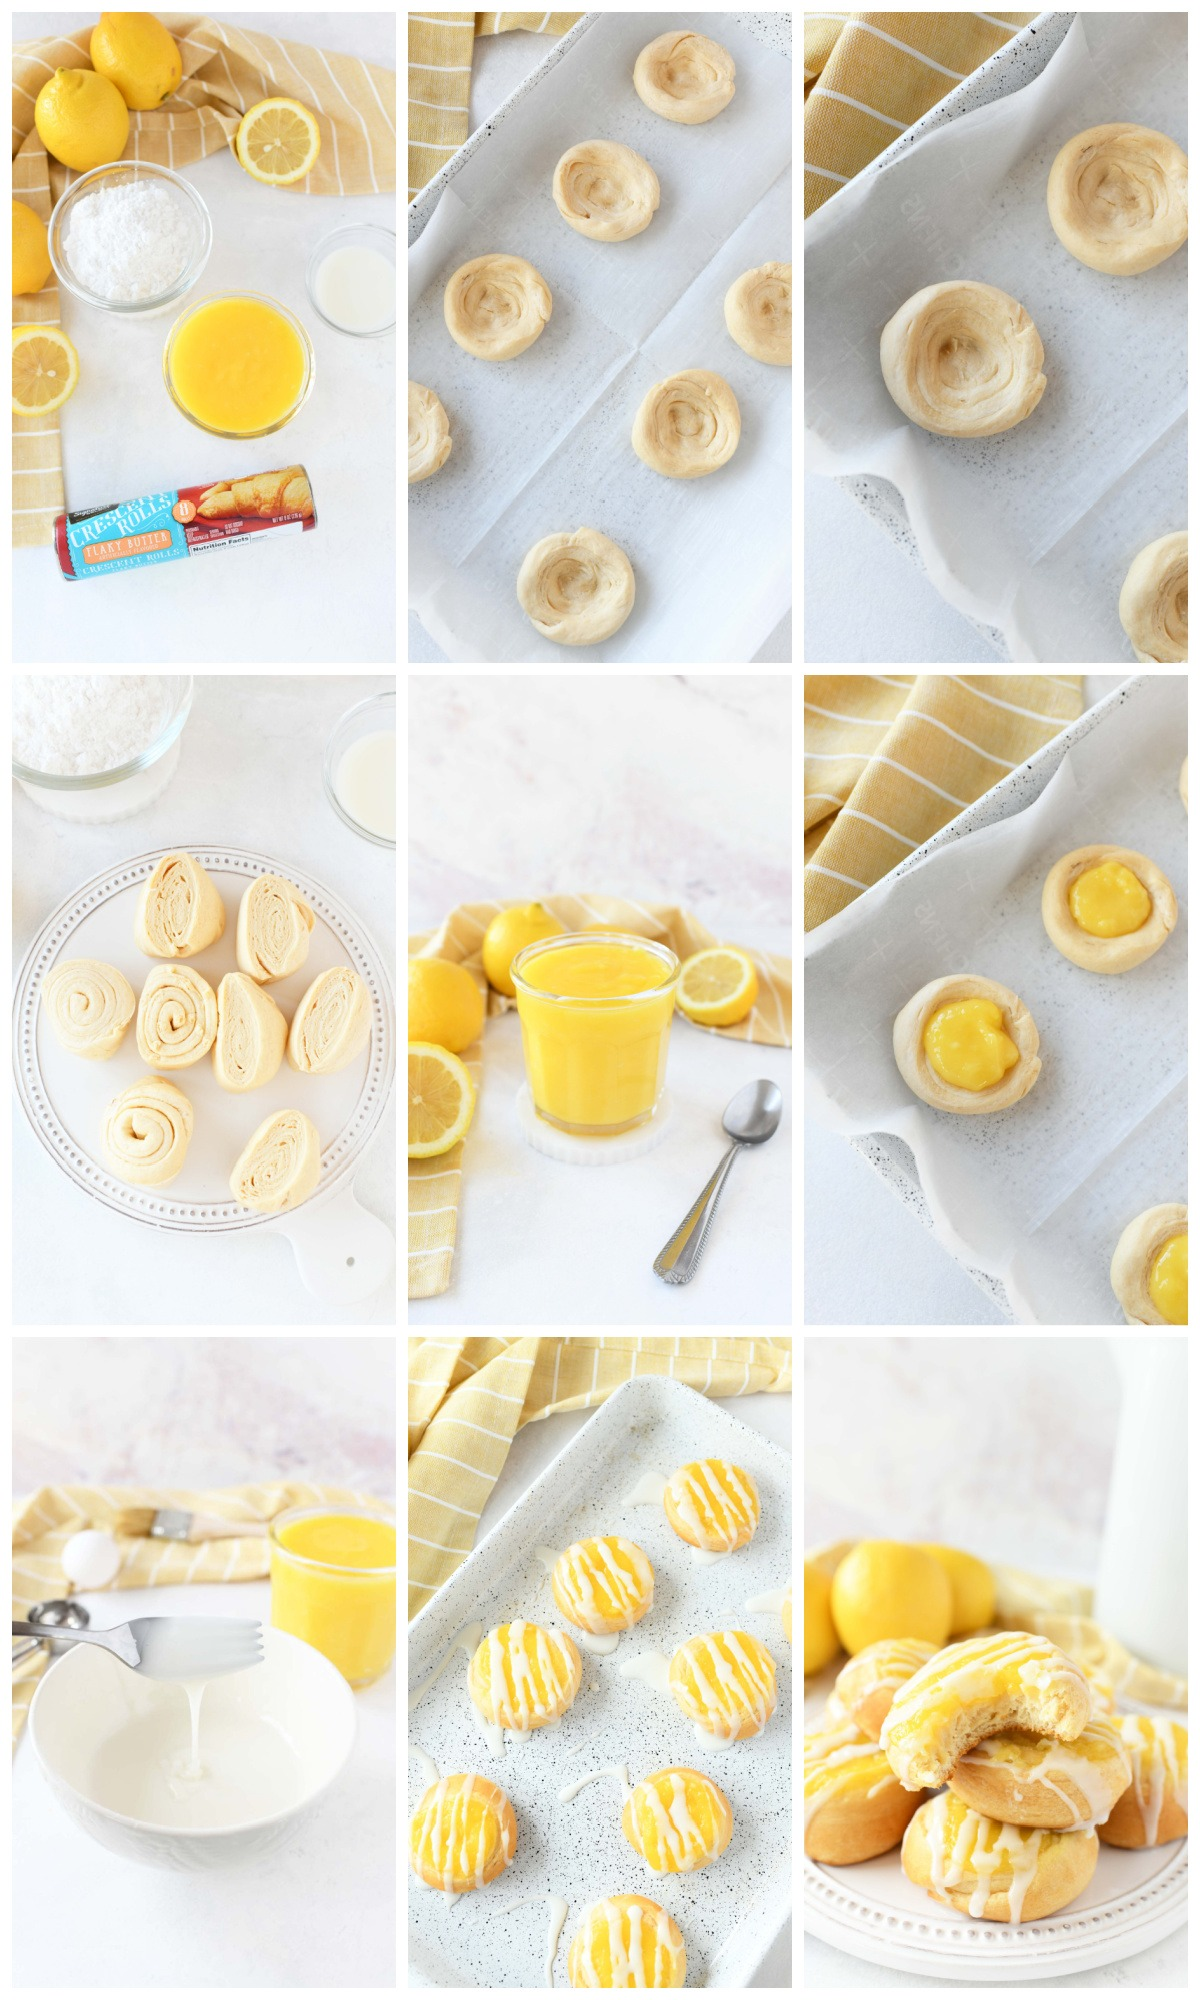 How to make lemon Danish collage of the recipe steps.